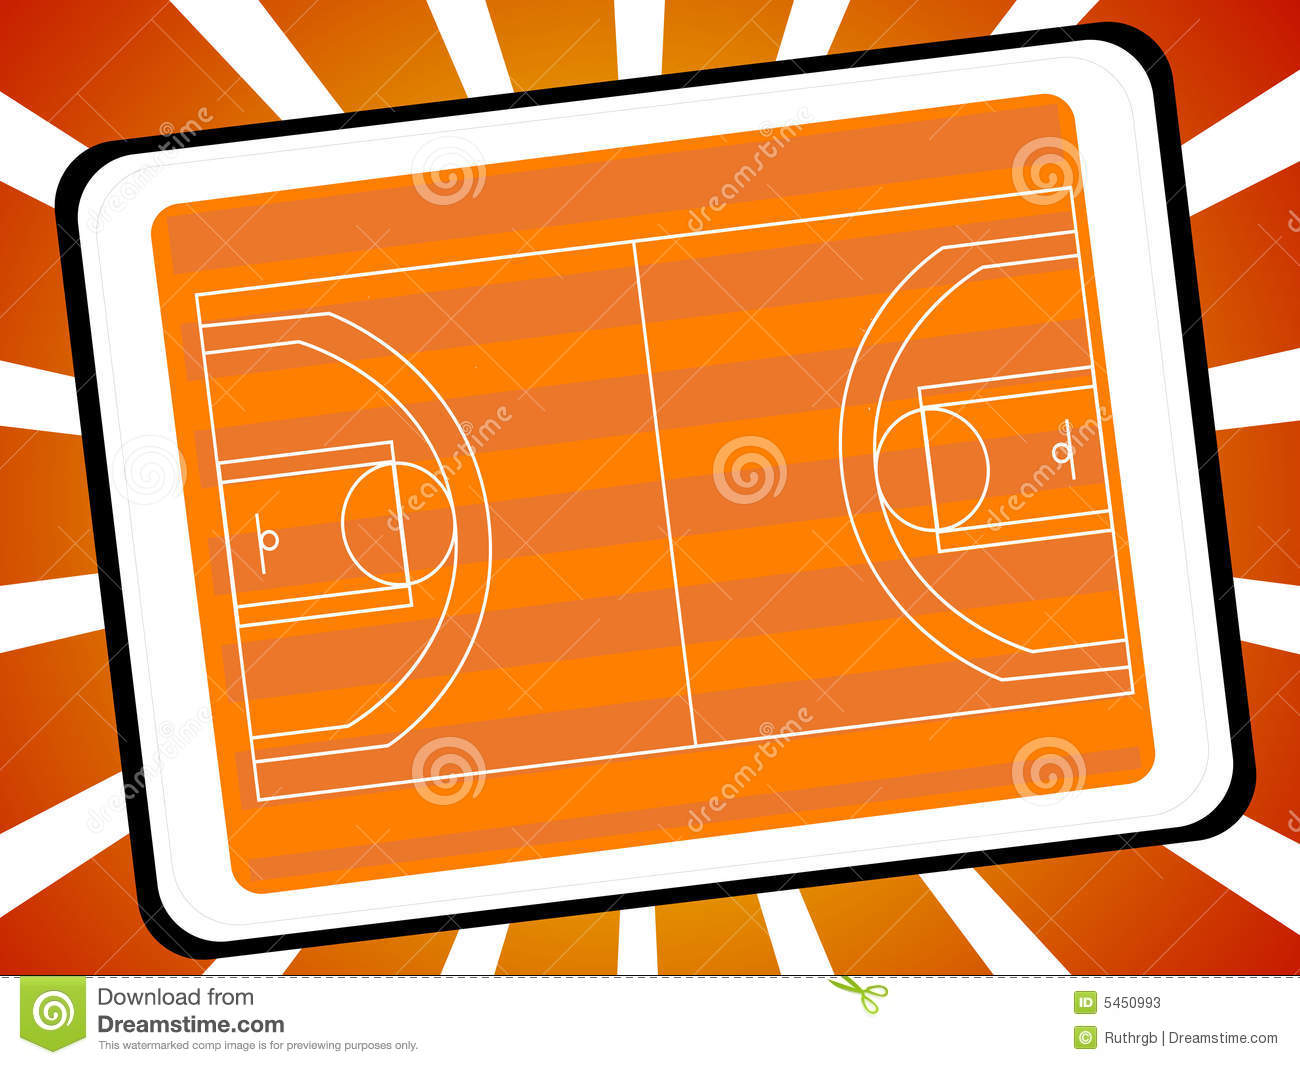 Basketball Court On Sunburst Background Mr No Pr No 3 1052 7